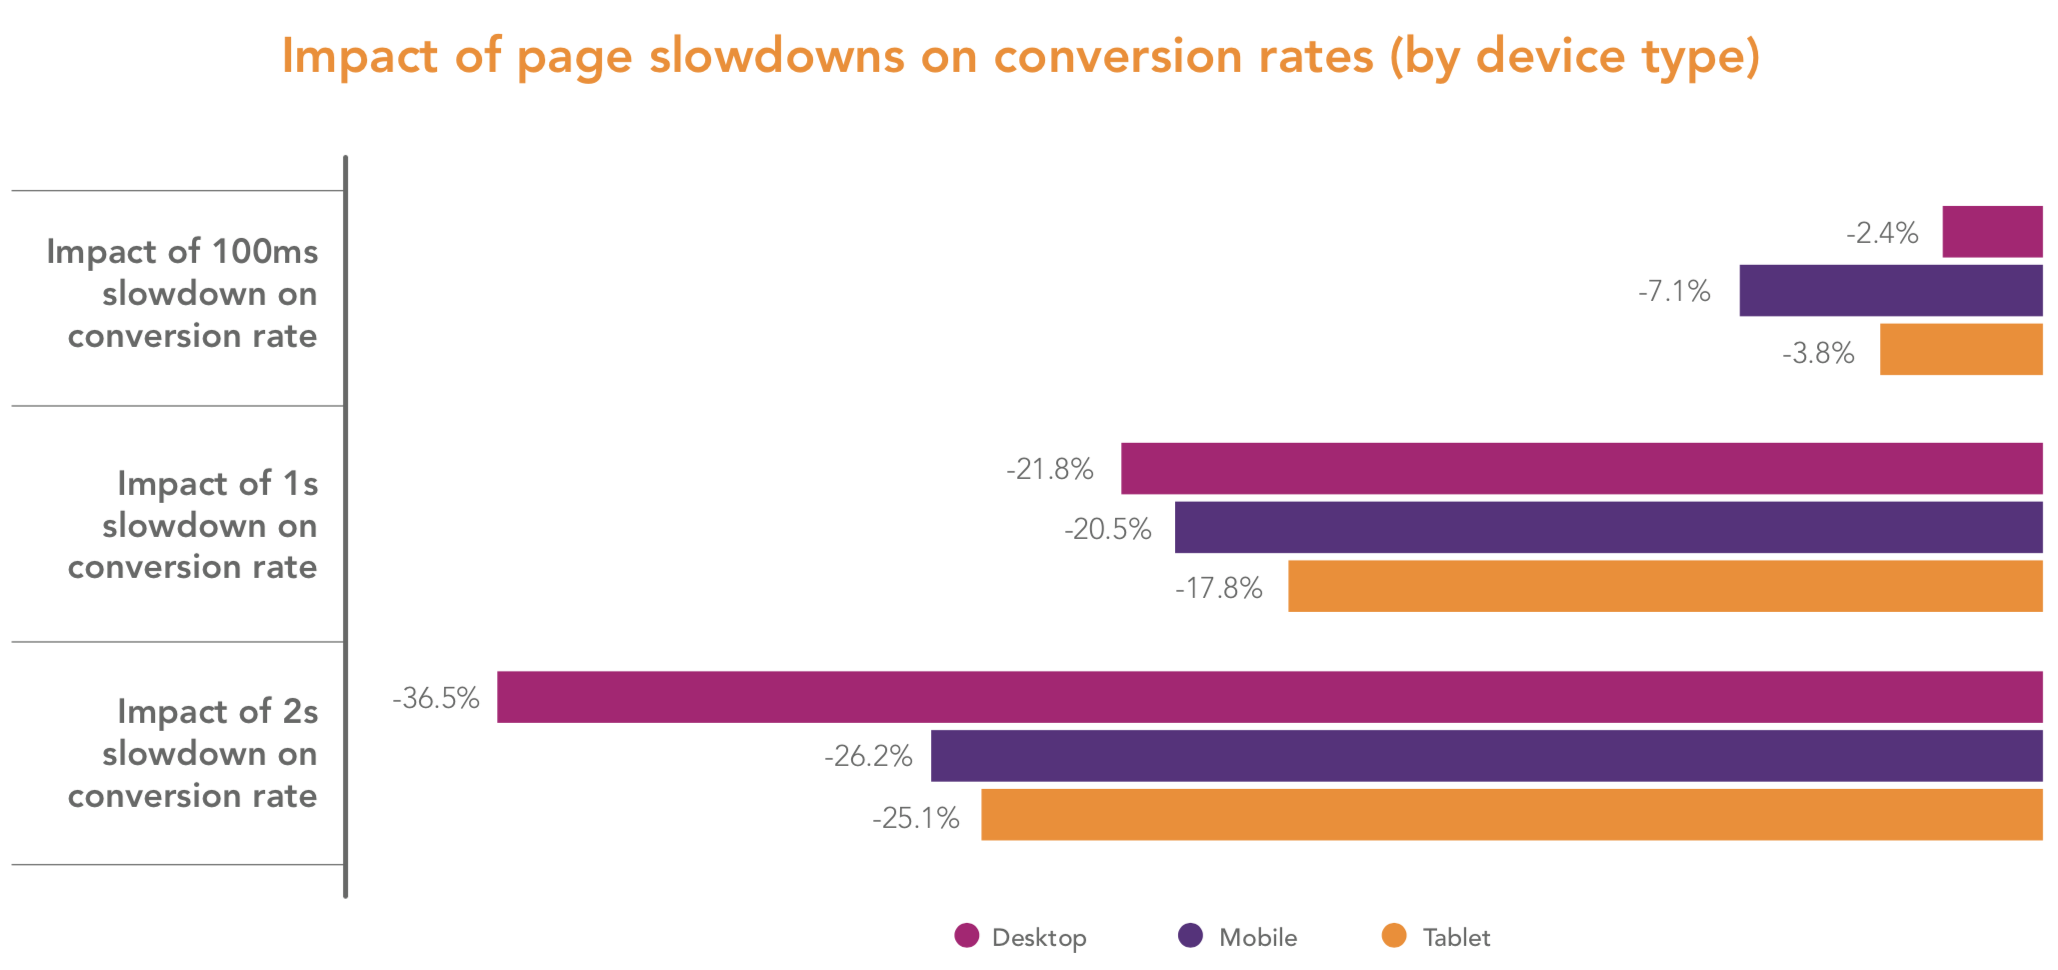 Impact of page slowdowns on conversion rates.